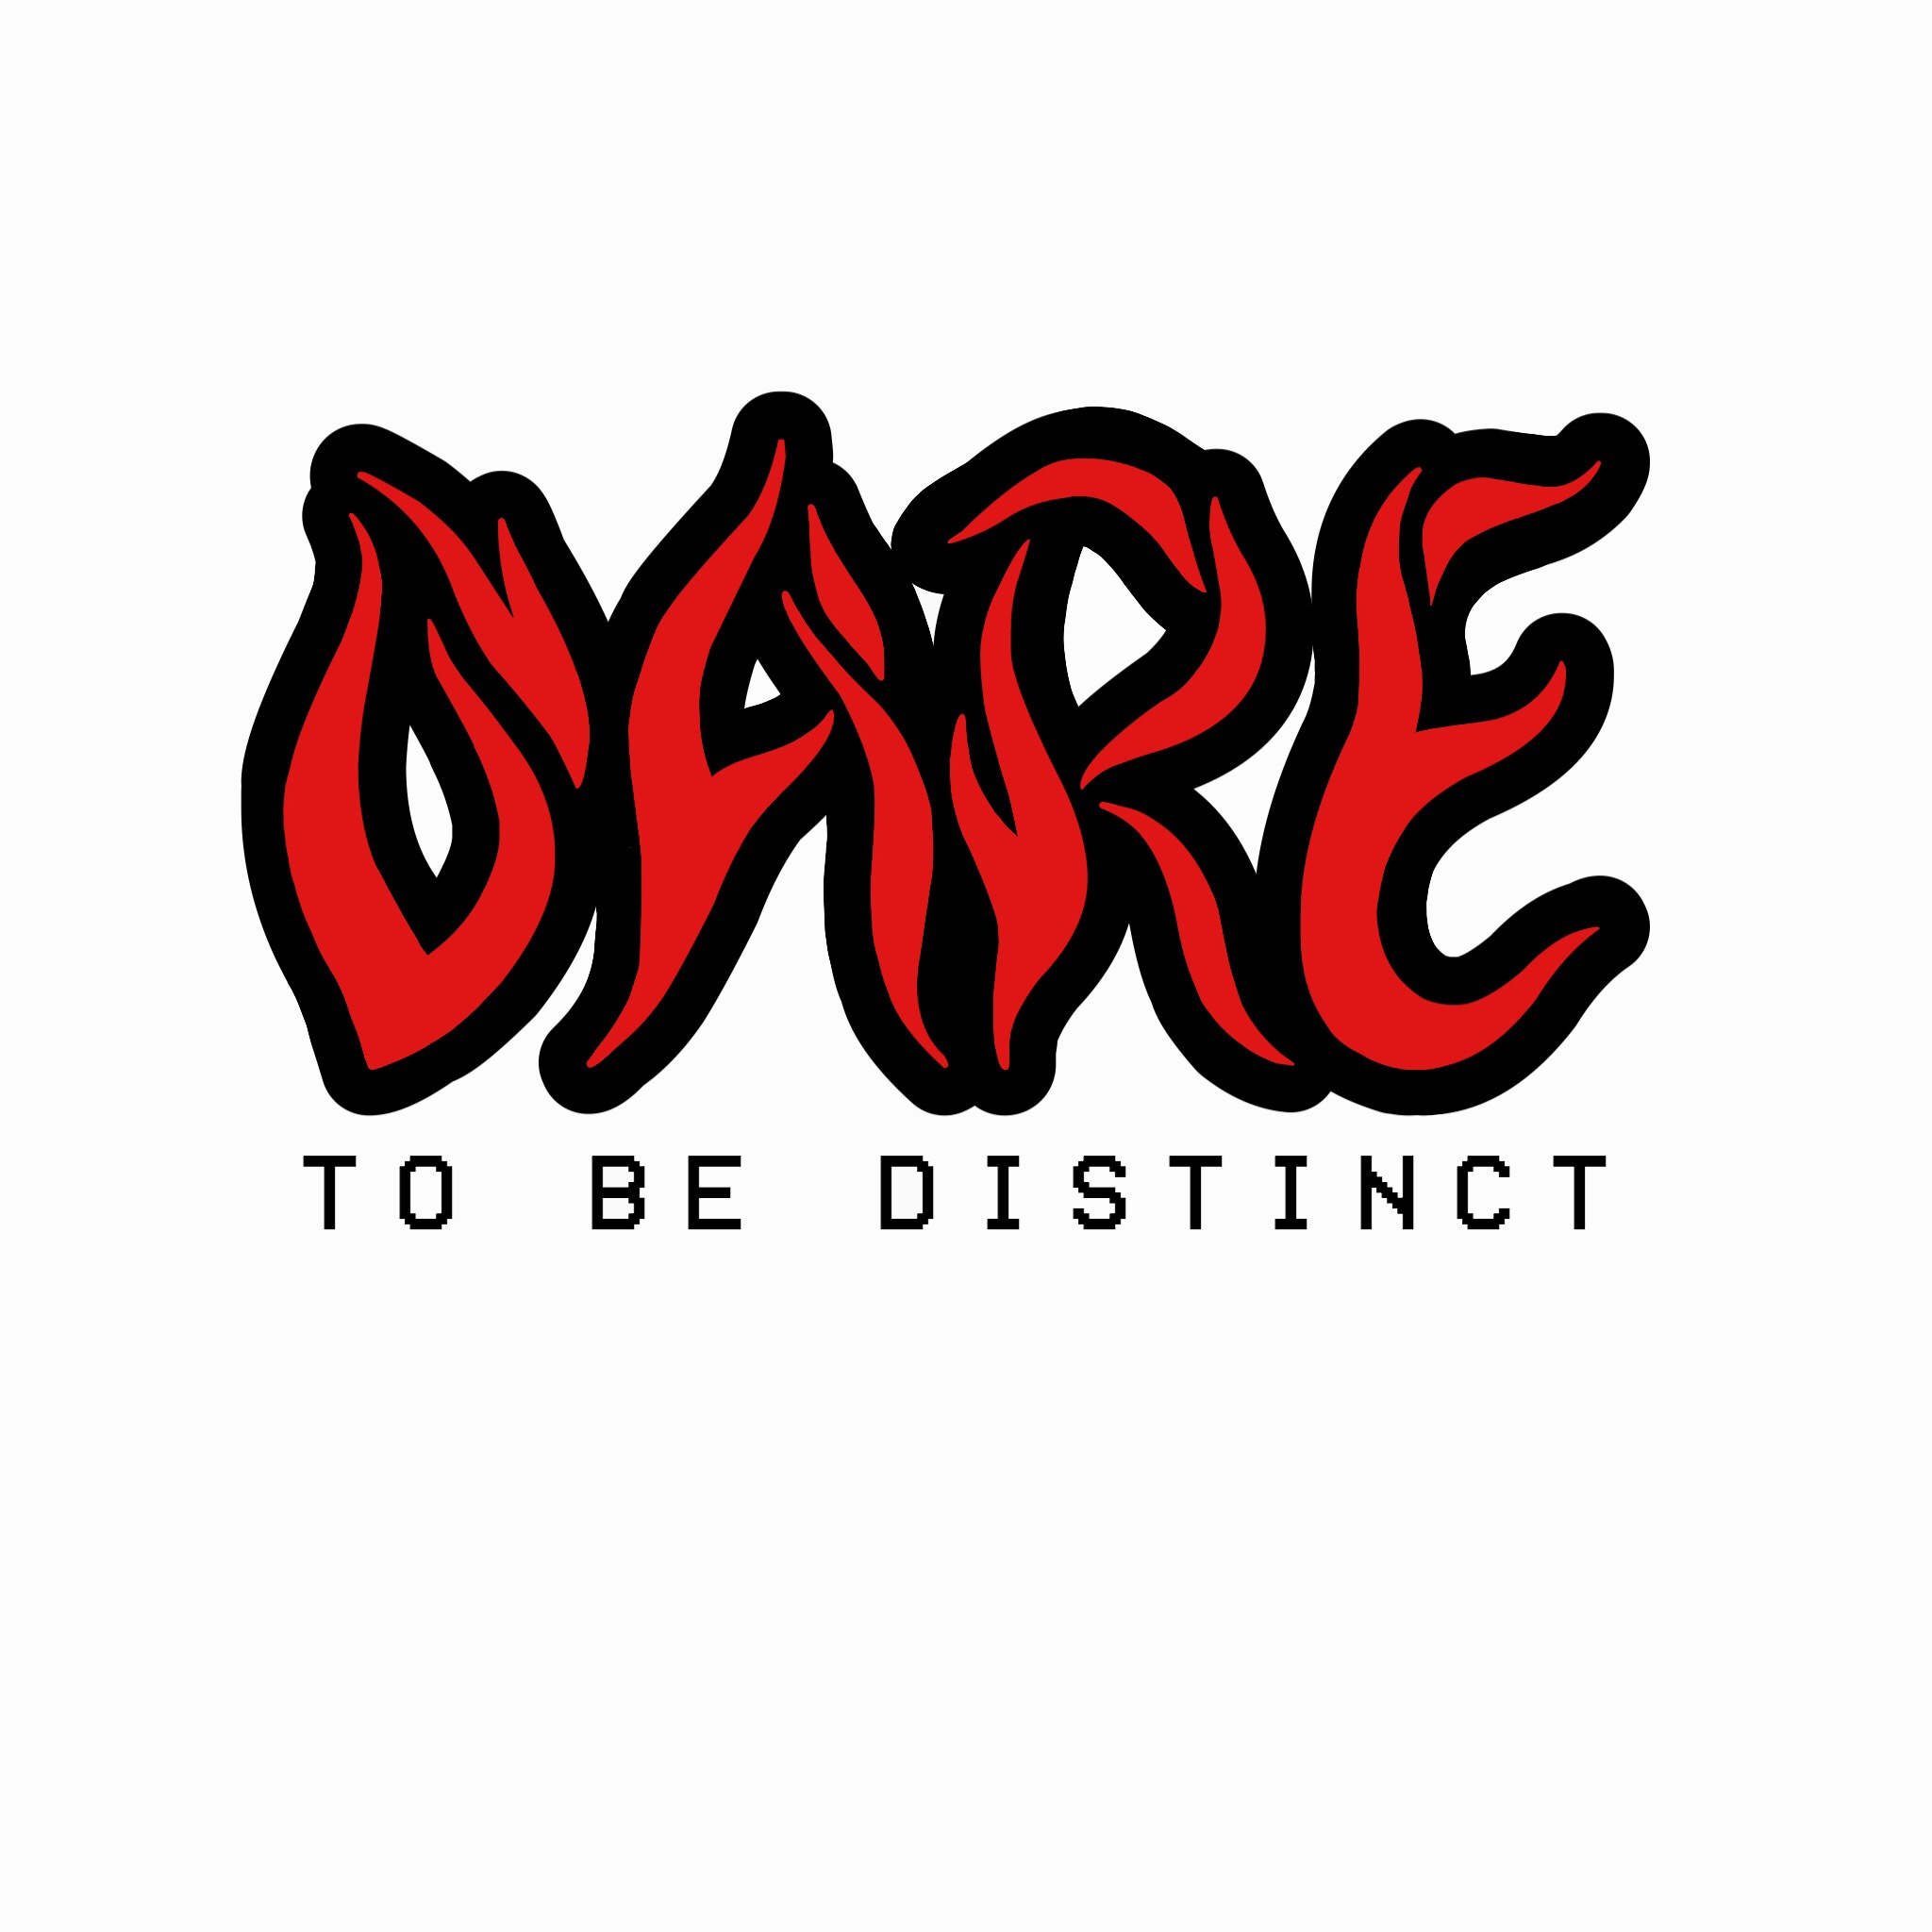 DARE TO BE DISTINCT